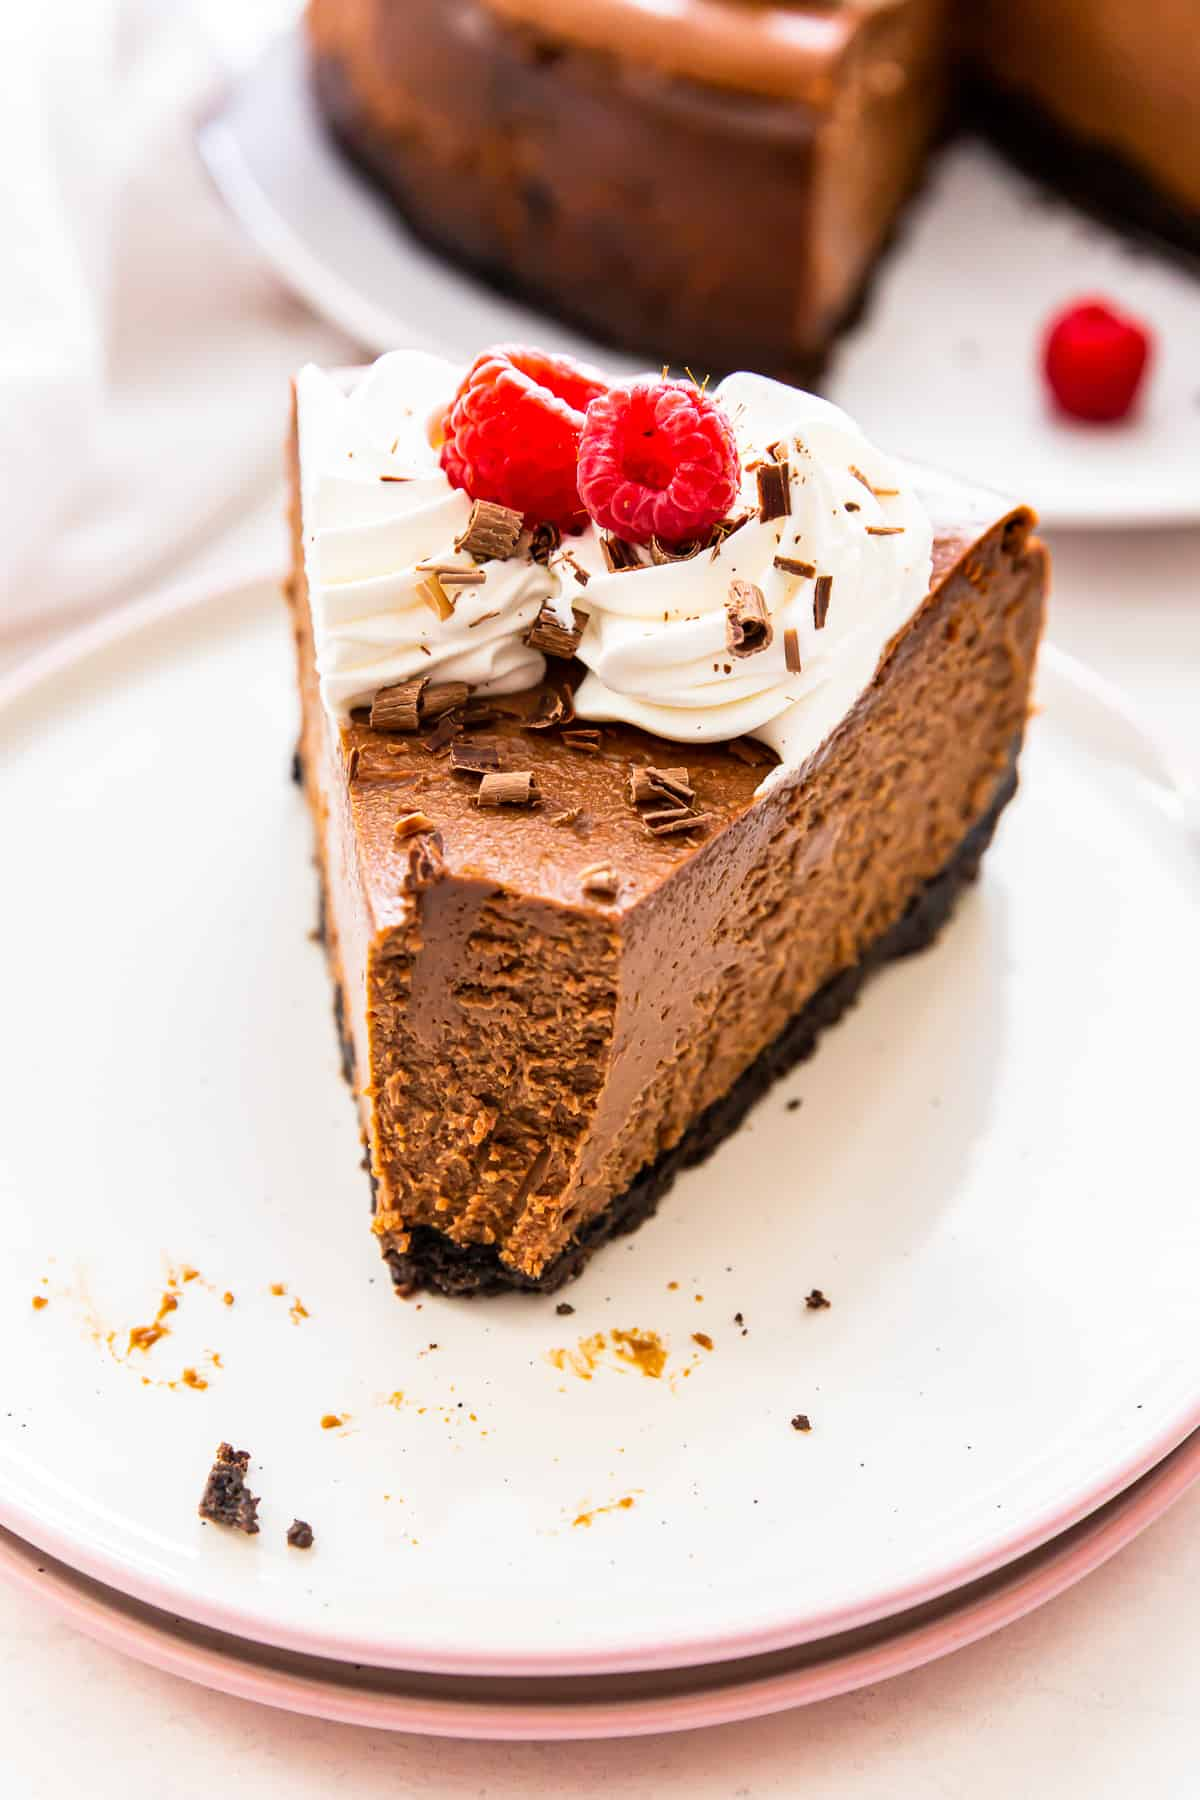 slice of chocolate cheeesecake on white plate with bite out